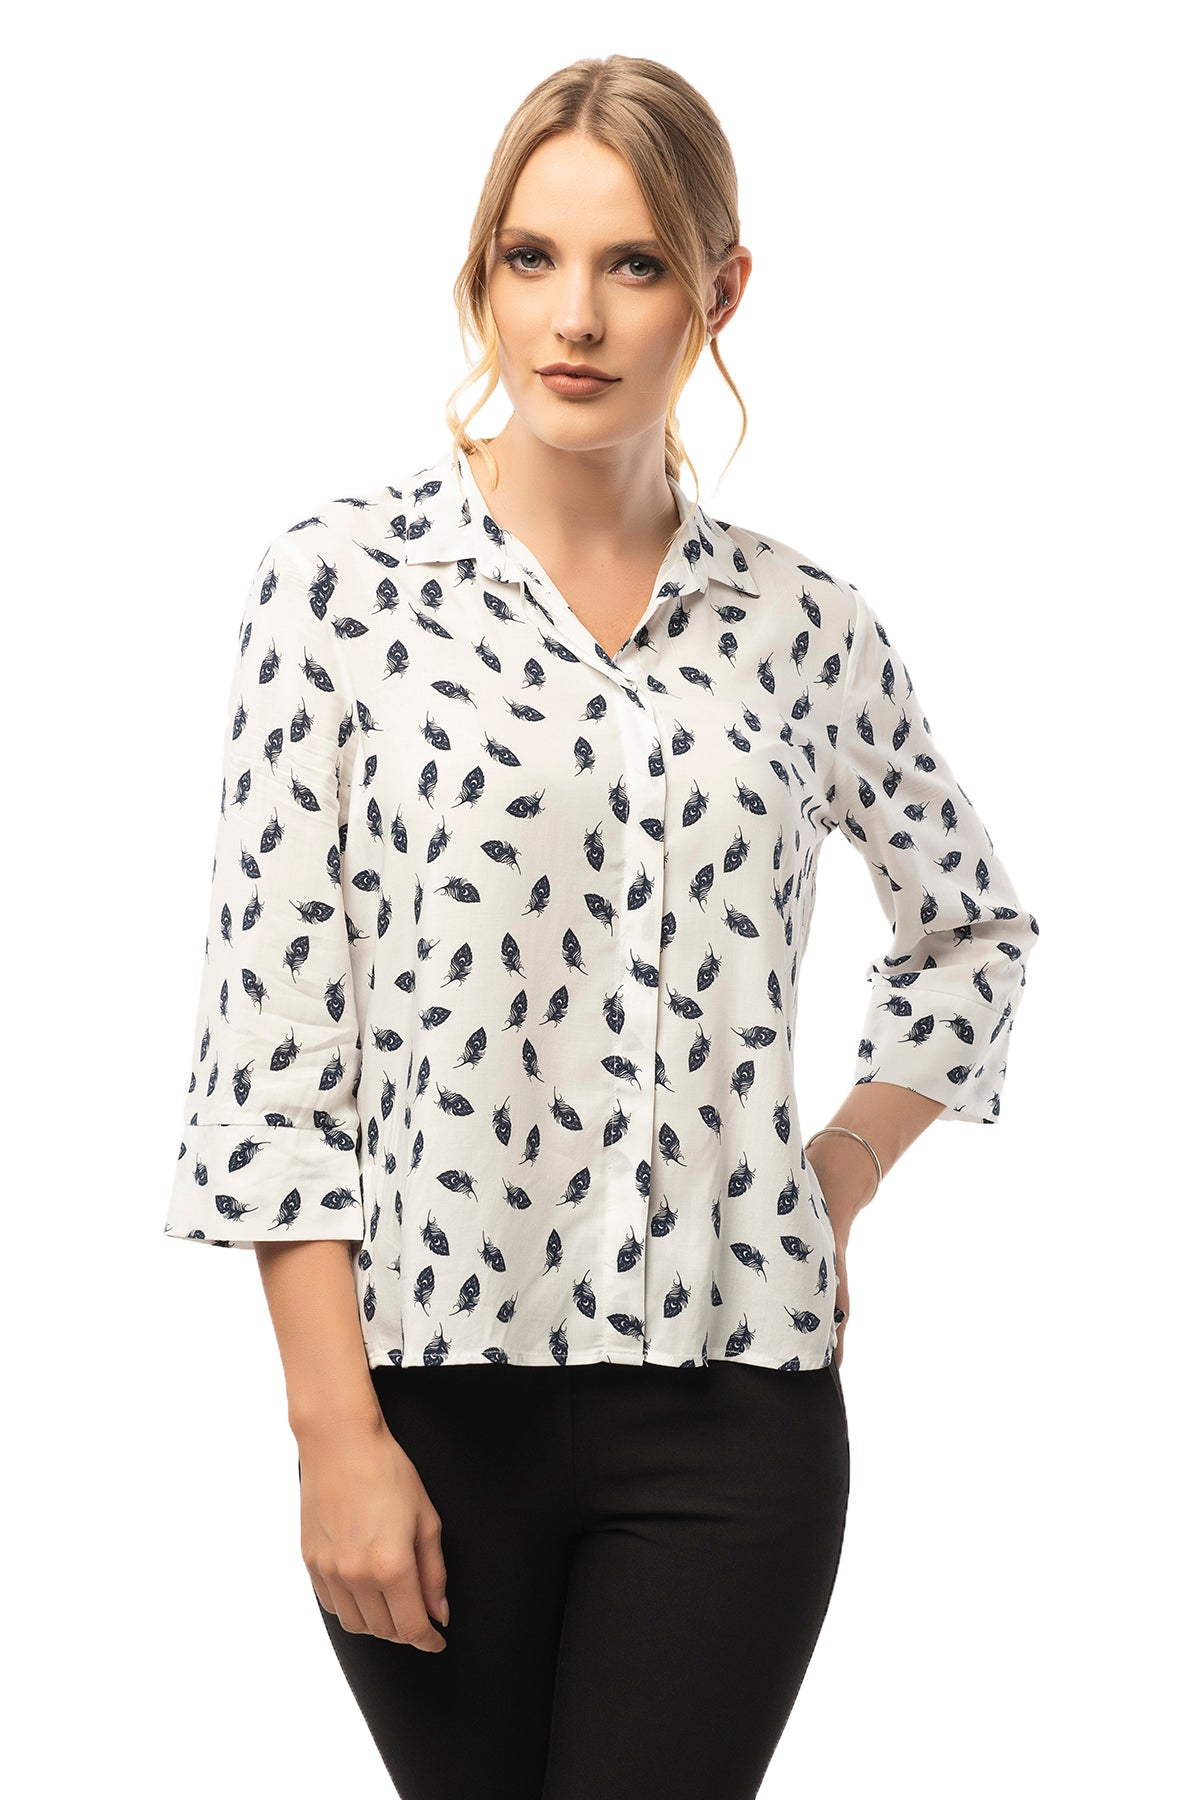 Hidden Front Button Down White Patterned Shirt - 3/4 Sleeve